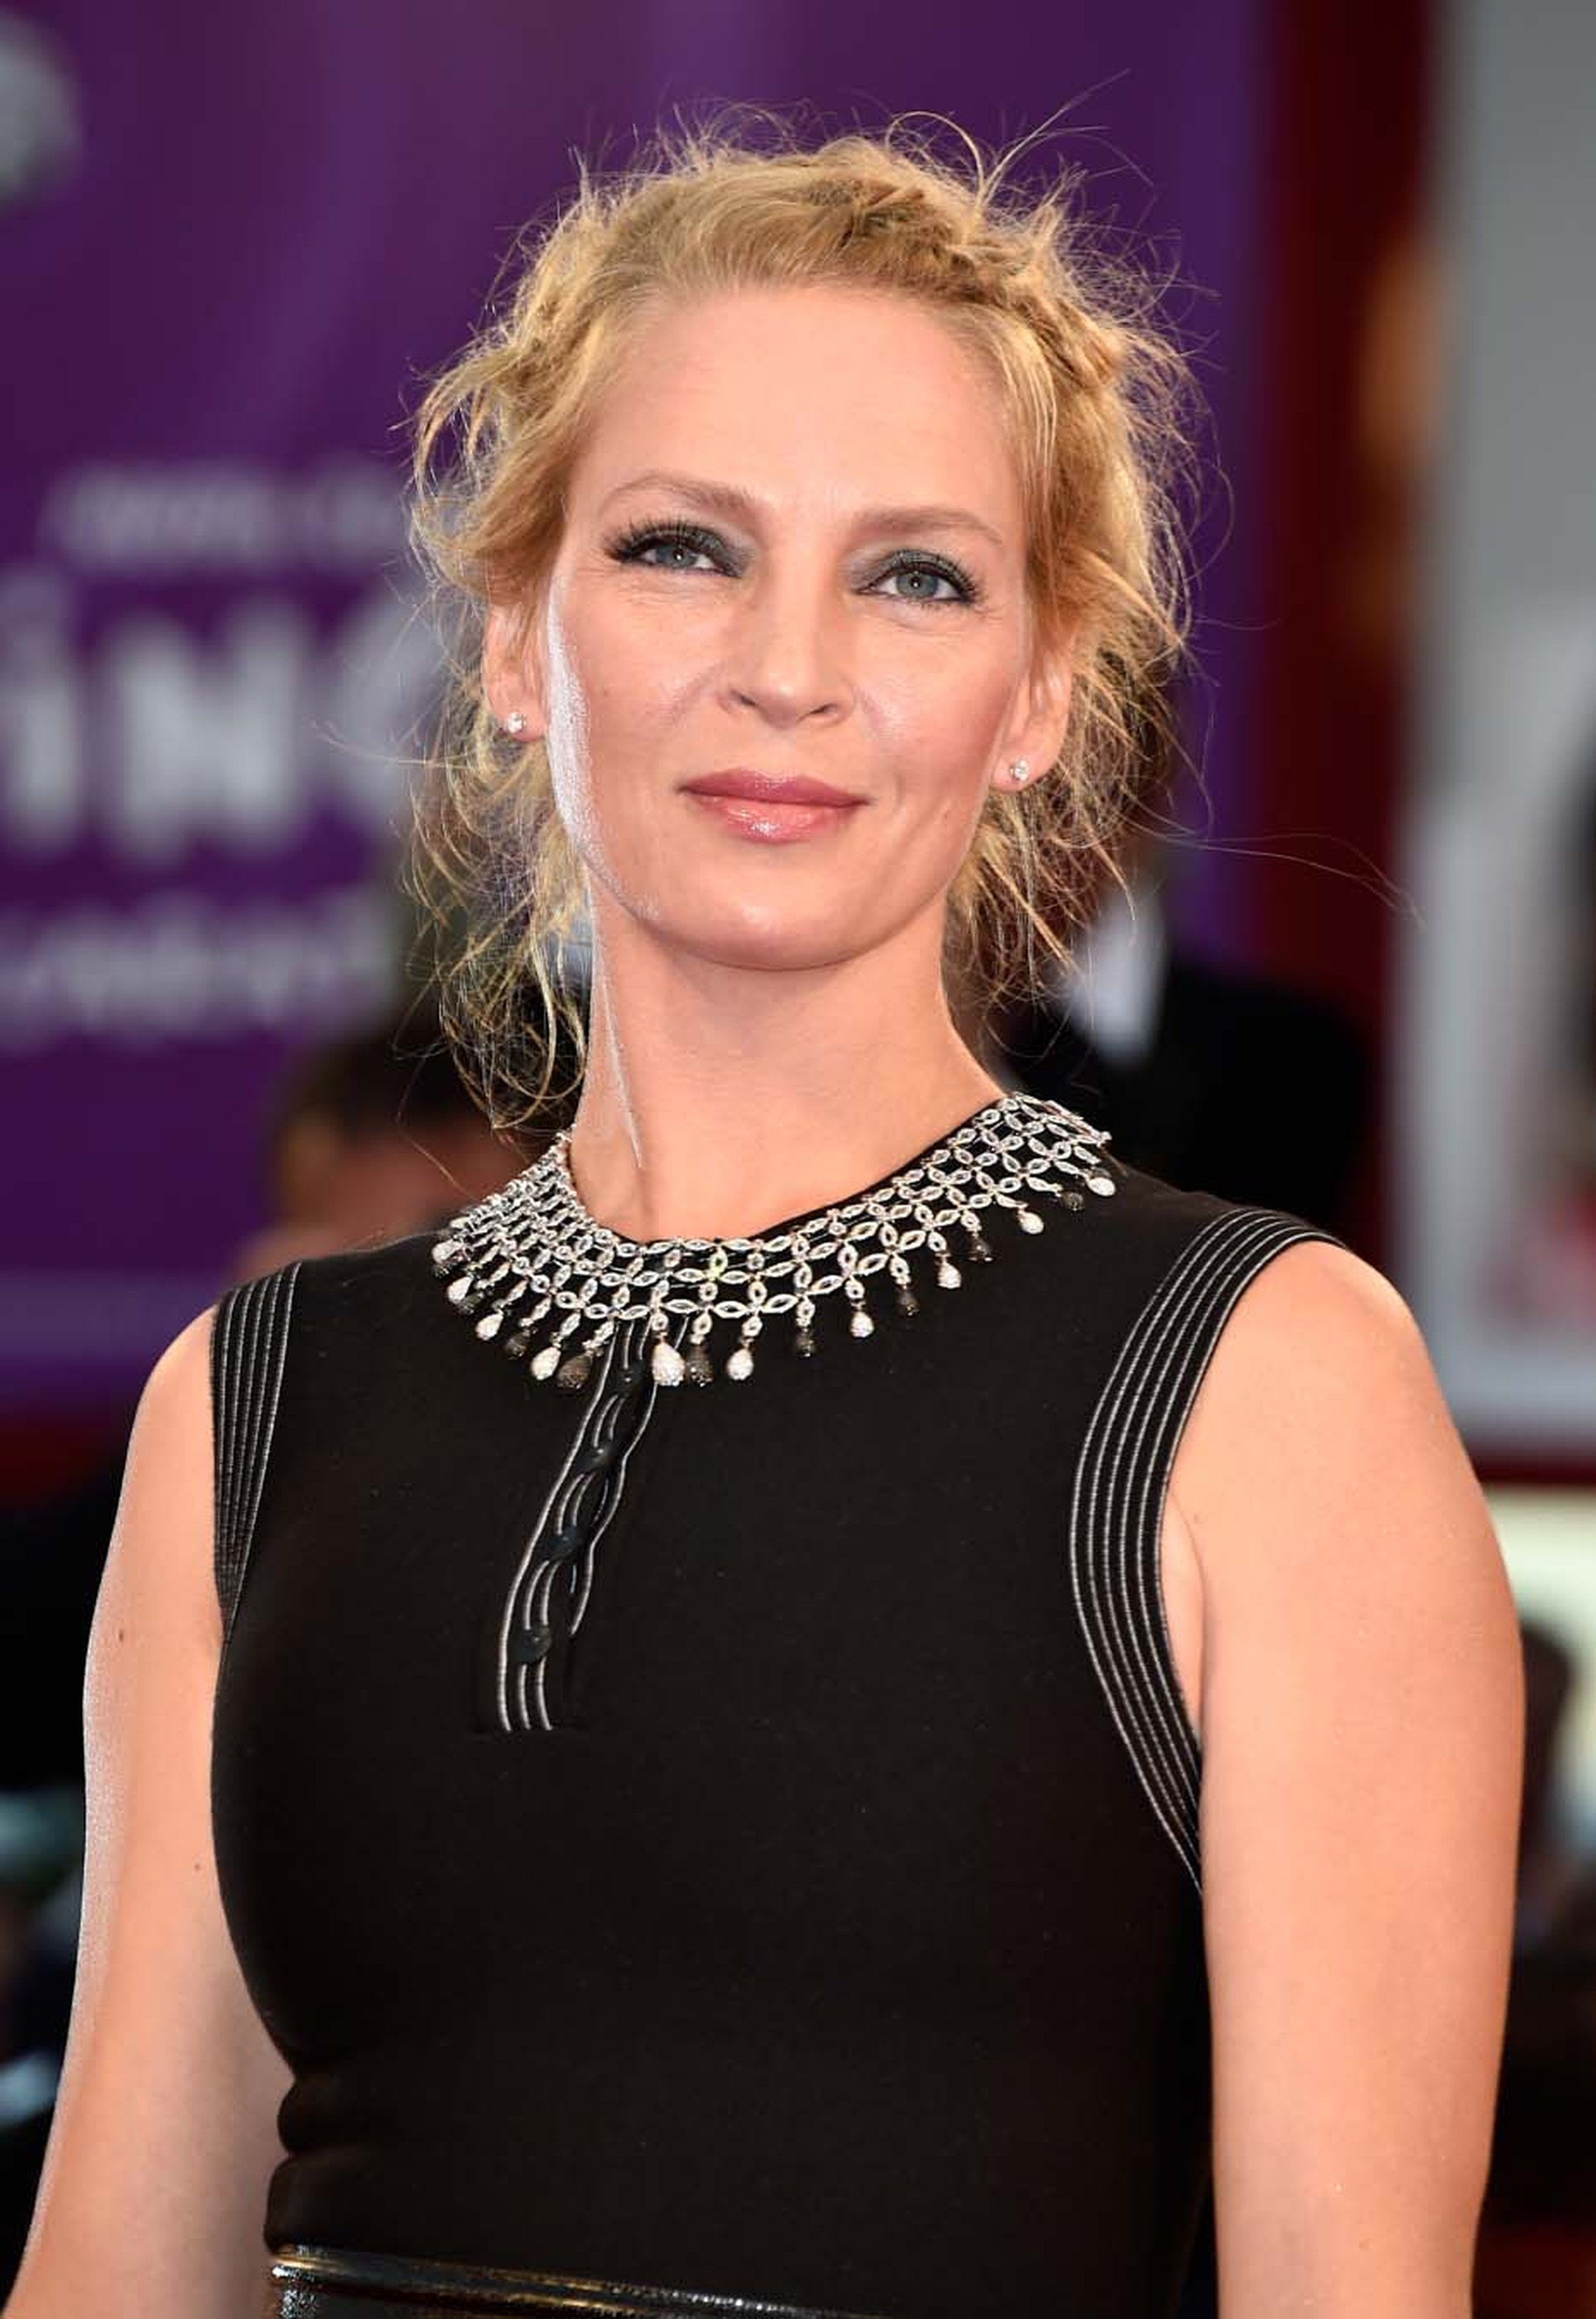 American actress Uma Thurman wore a pair of diamond stud earrings, a bracelet set with 36ct of fancy-cut diamonds, diamond earrings worn in her hair and a necklace from the Chopard High Jewellery Collection set with 12ct of black diamonds and 20ct of bril